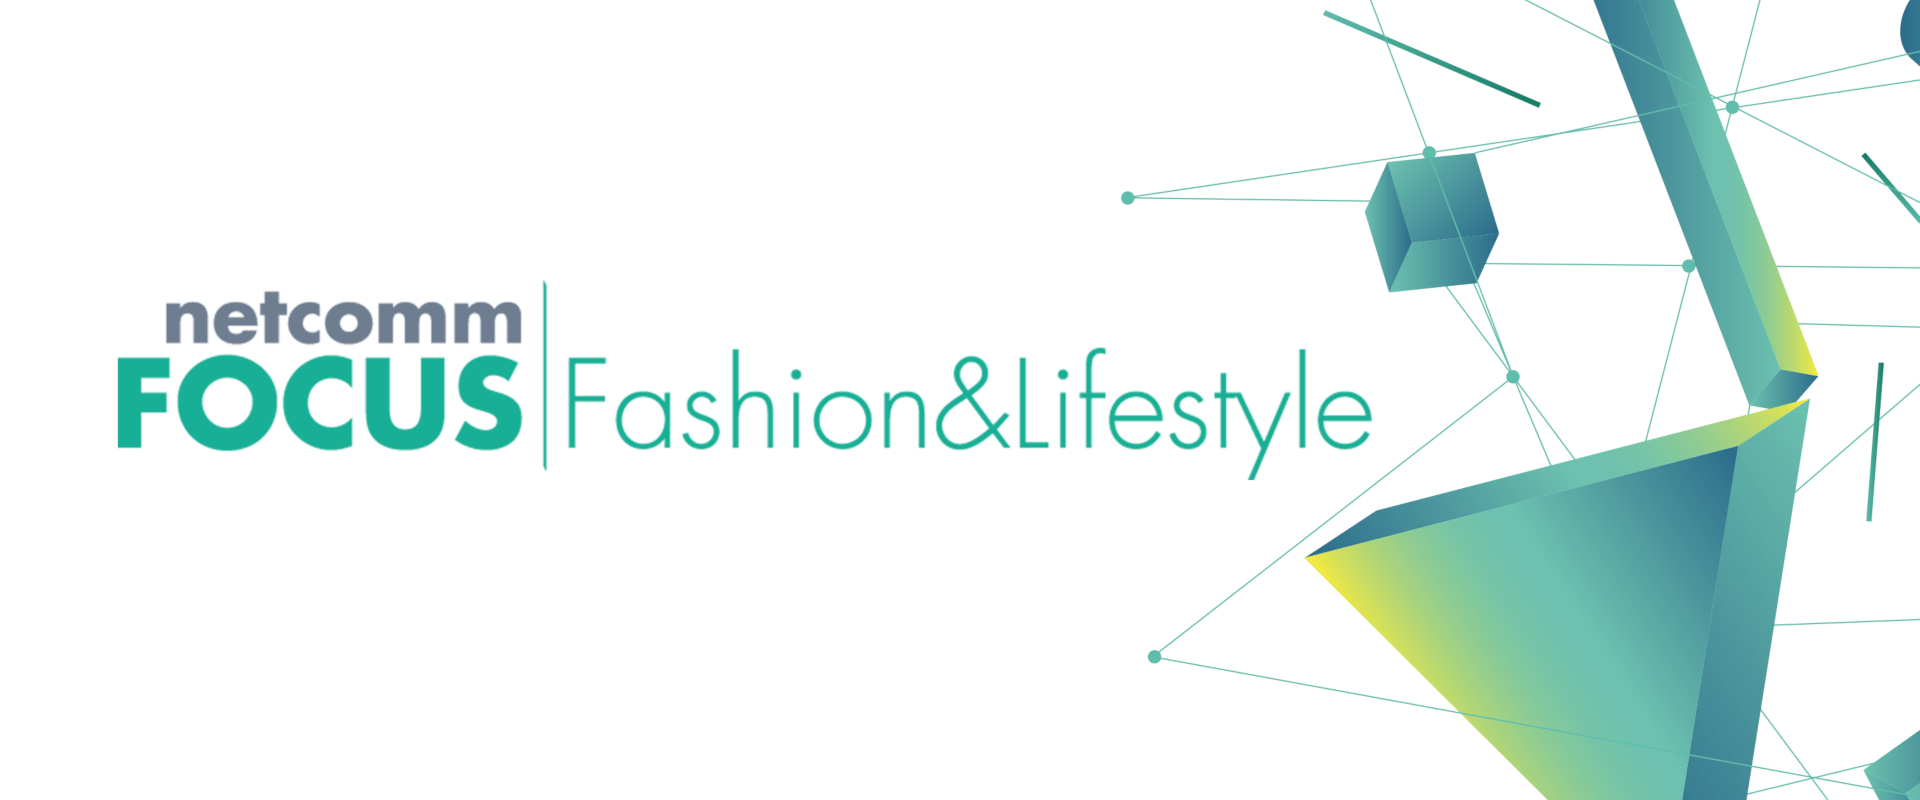 Netcomm FOCUS Fashion & Lifestyle 2019